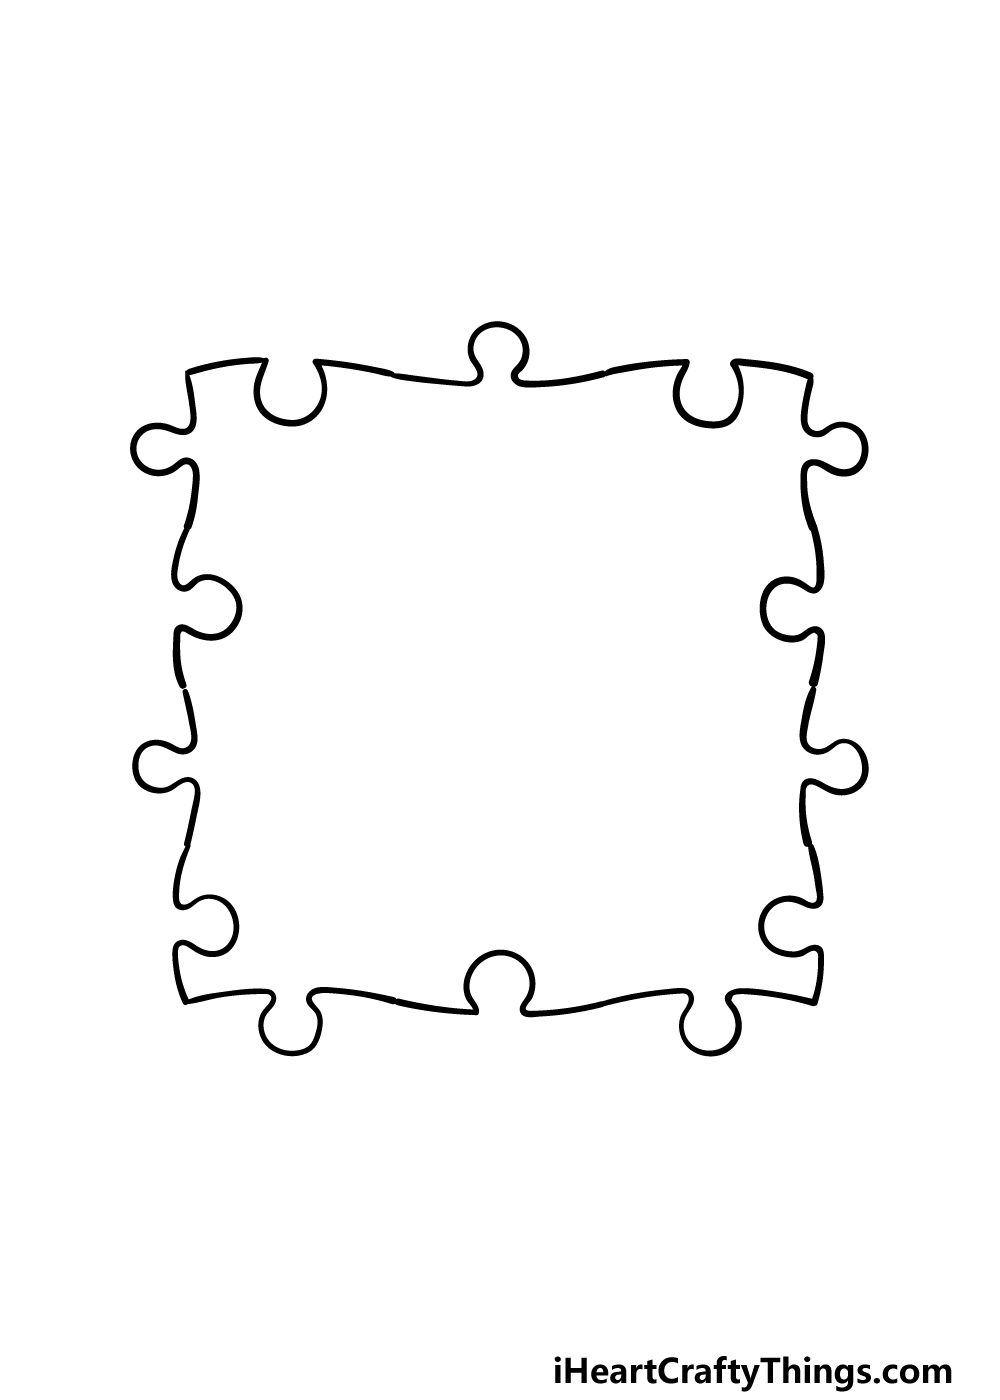 how to draw Puzzle Pieces step 2